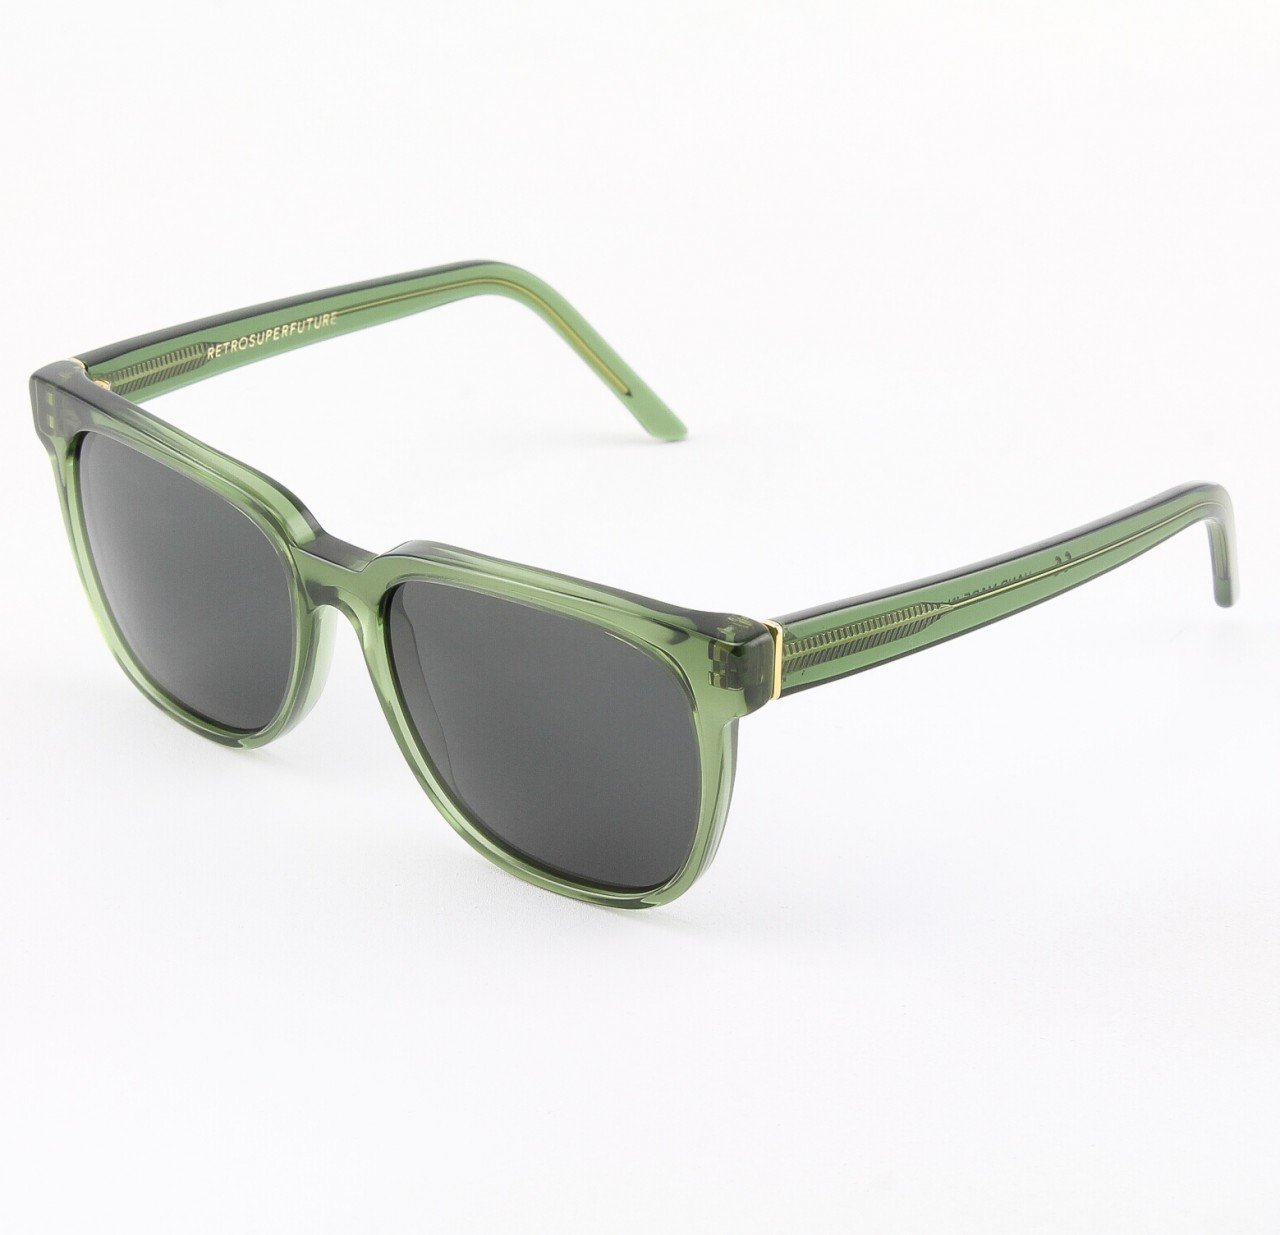 Super People 356/3T Sunglasses Crystal with Grey Zeiss Lenses by RETROSUPERFUTURE